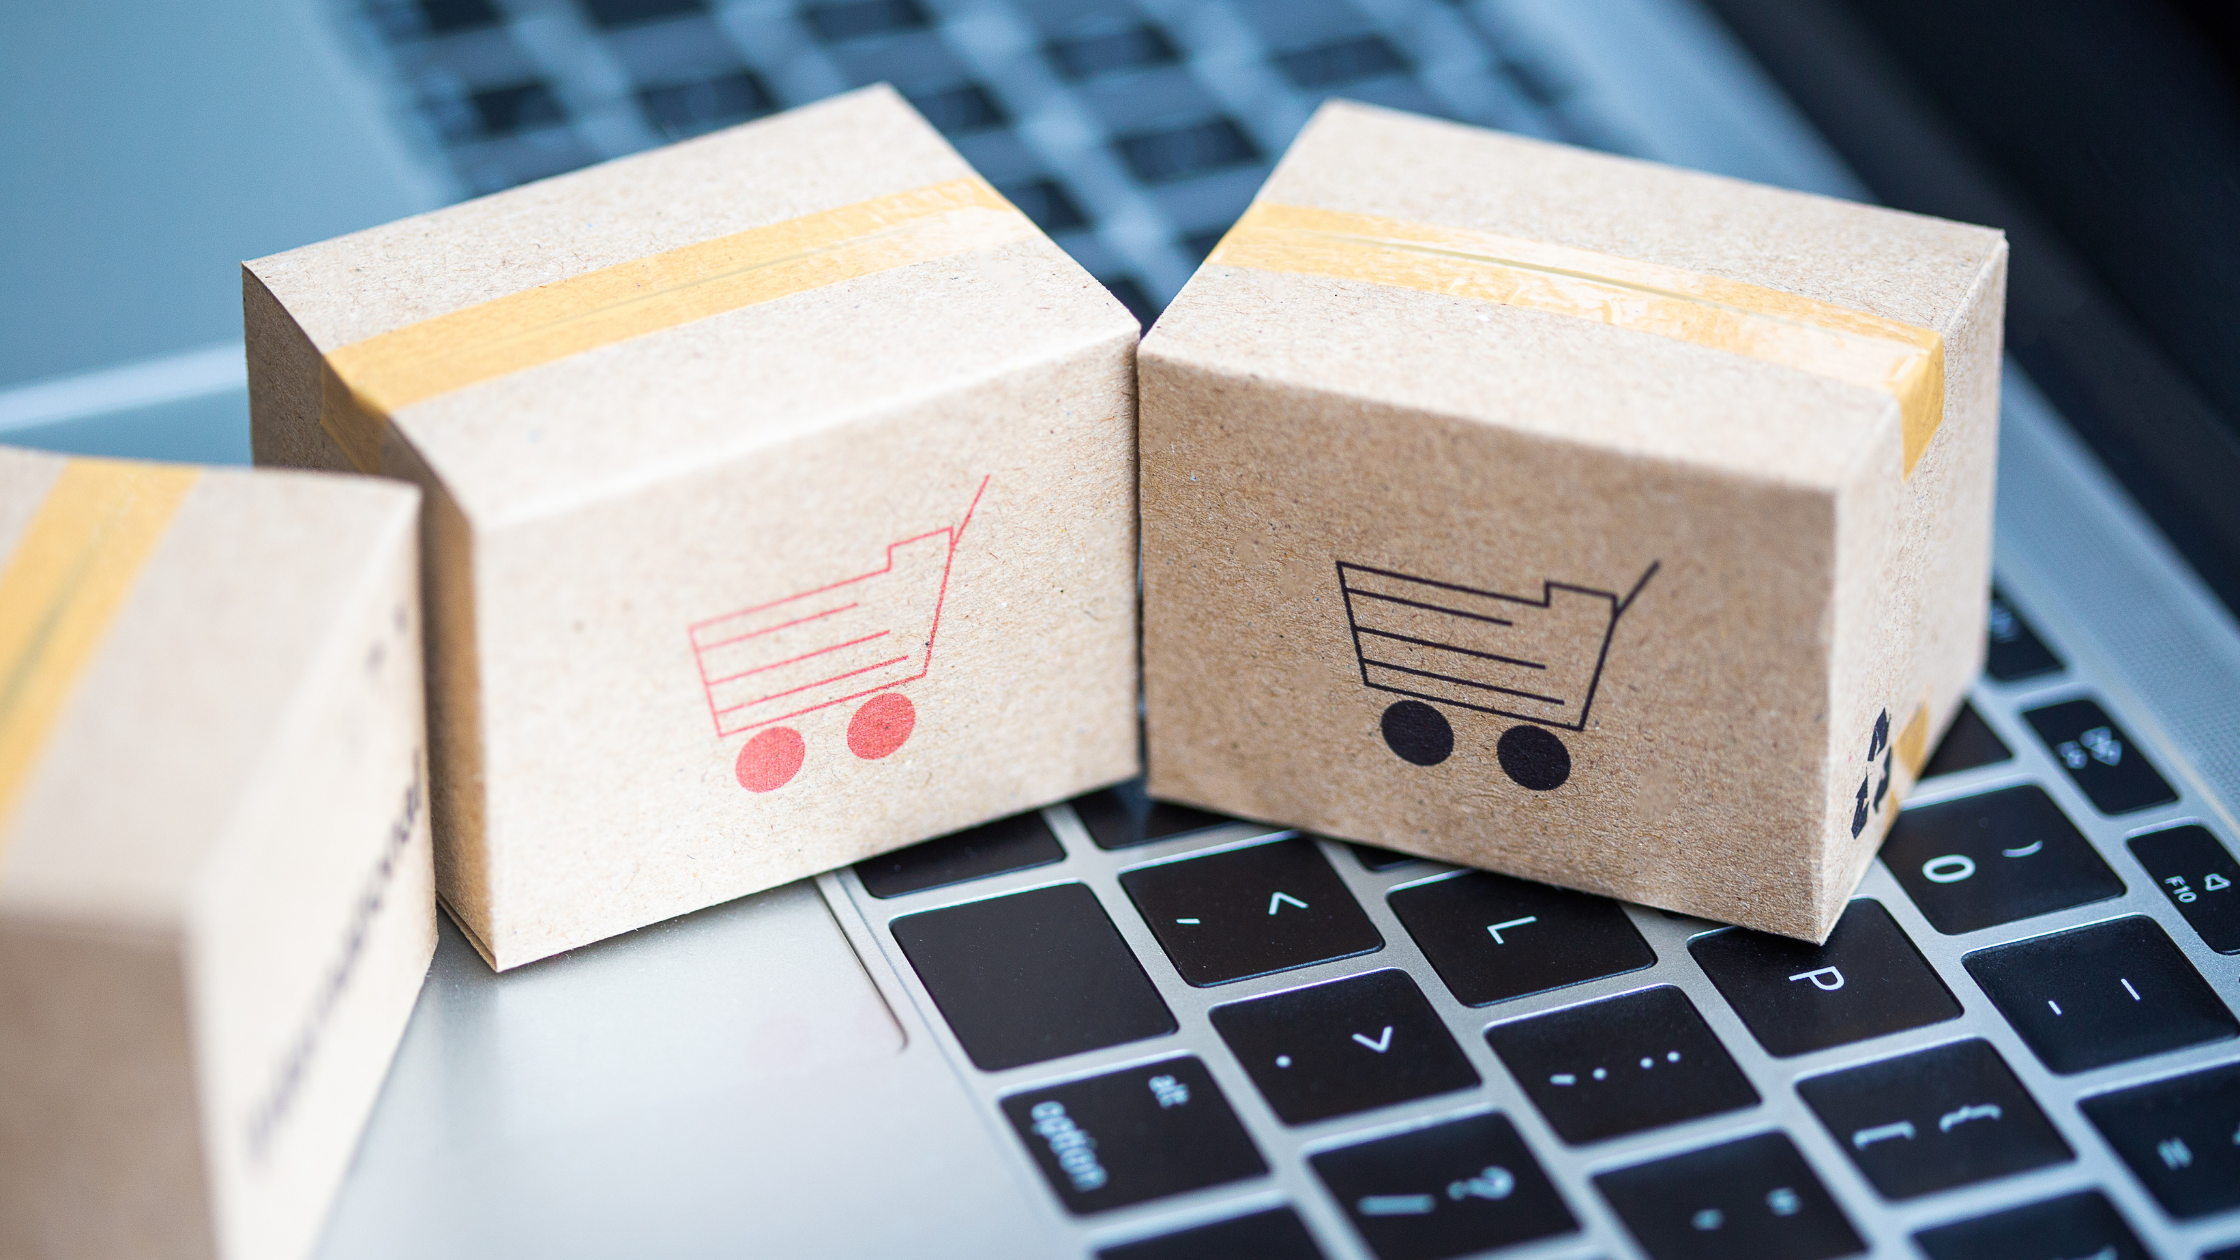 e-commerce three corrugated packaging sitting on a keyboard